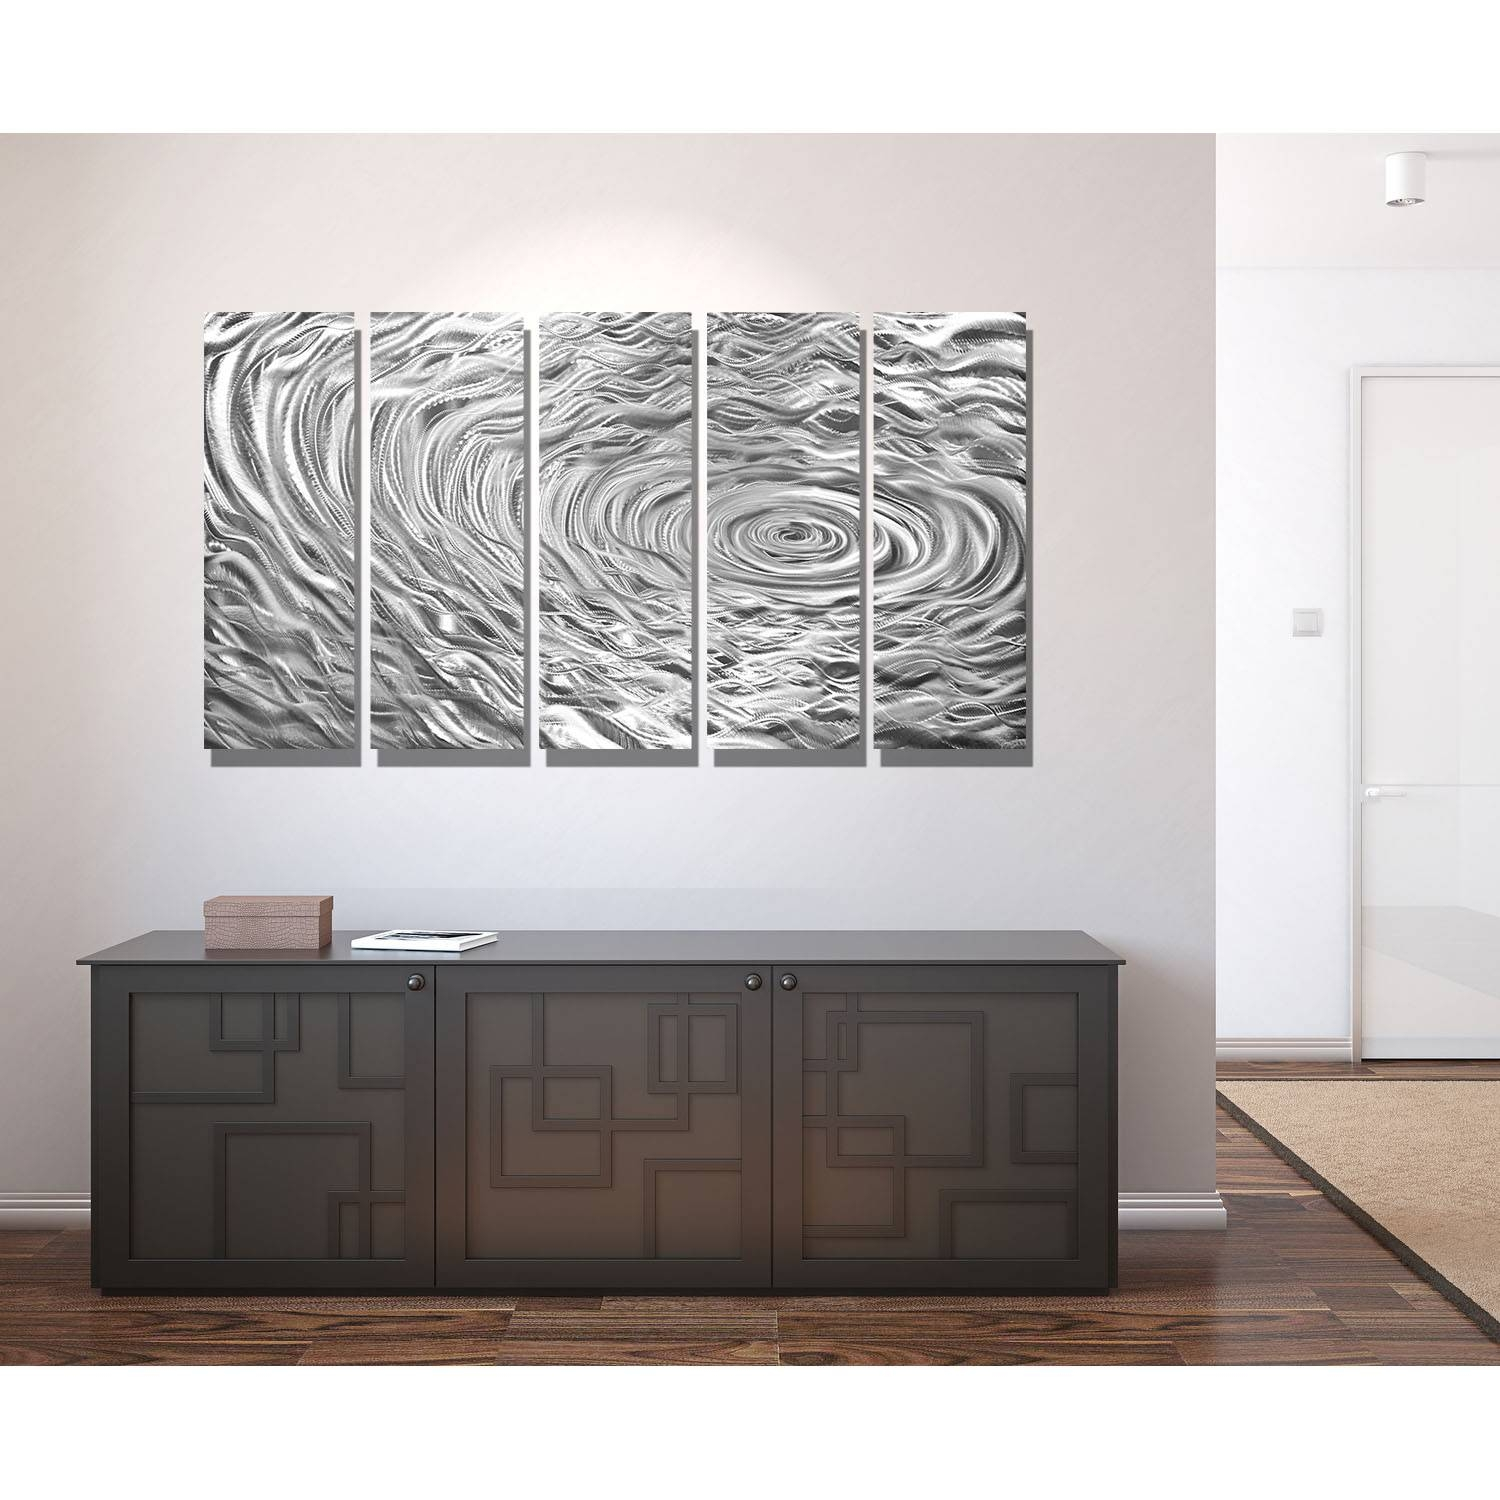 Silver Swell – Silver Metal Wall Art – 5 Panel Wall Décorjon For Latest Silver Metal Wall Art (View 13 of 20)